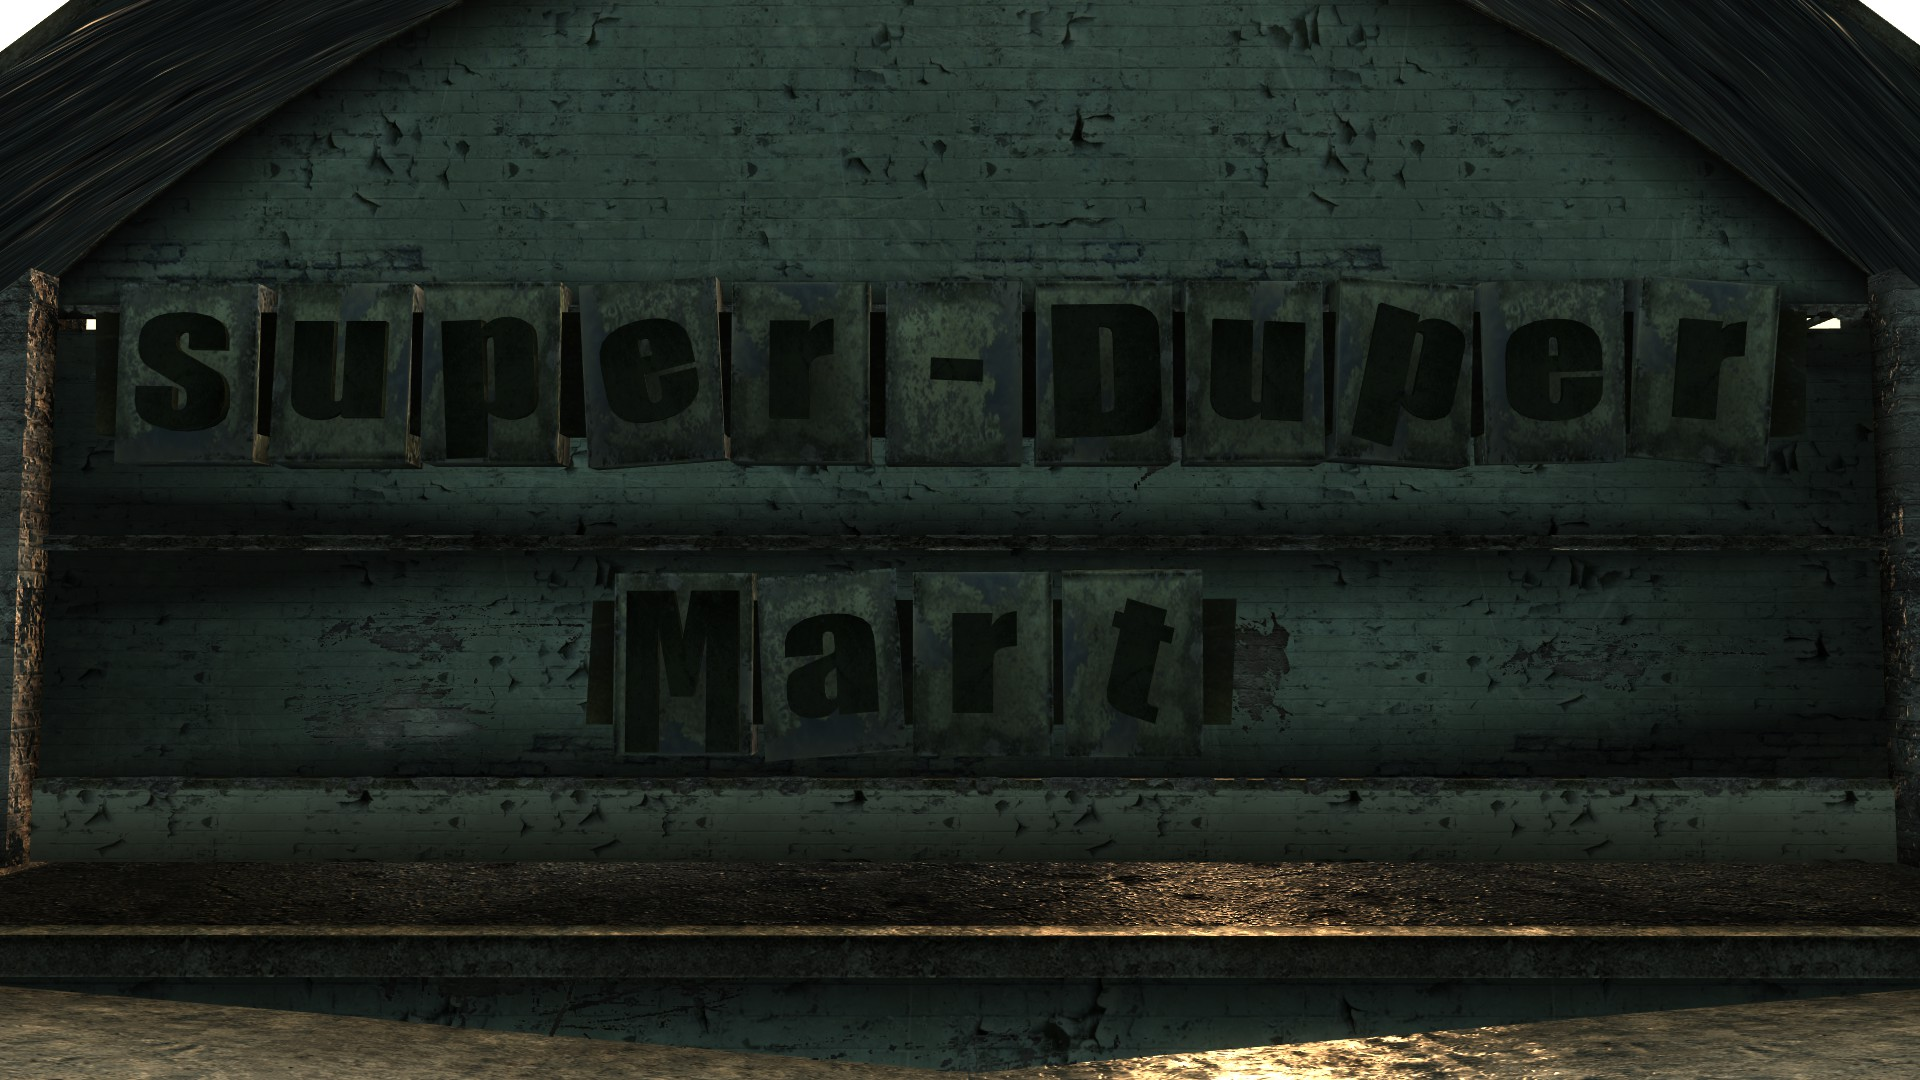 Superdupermartsign